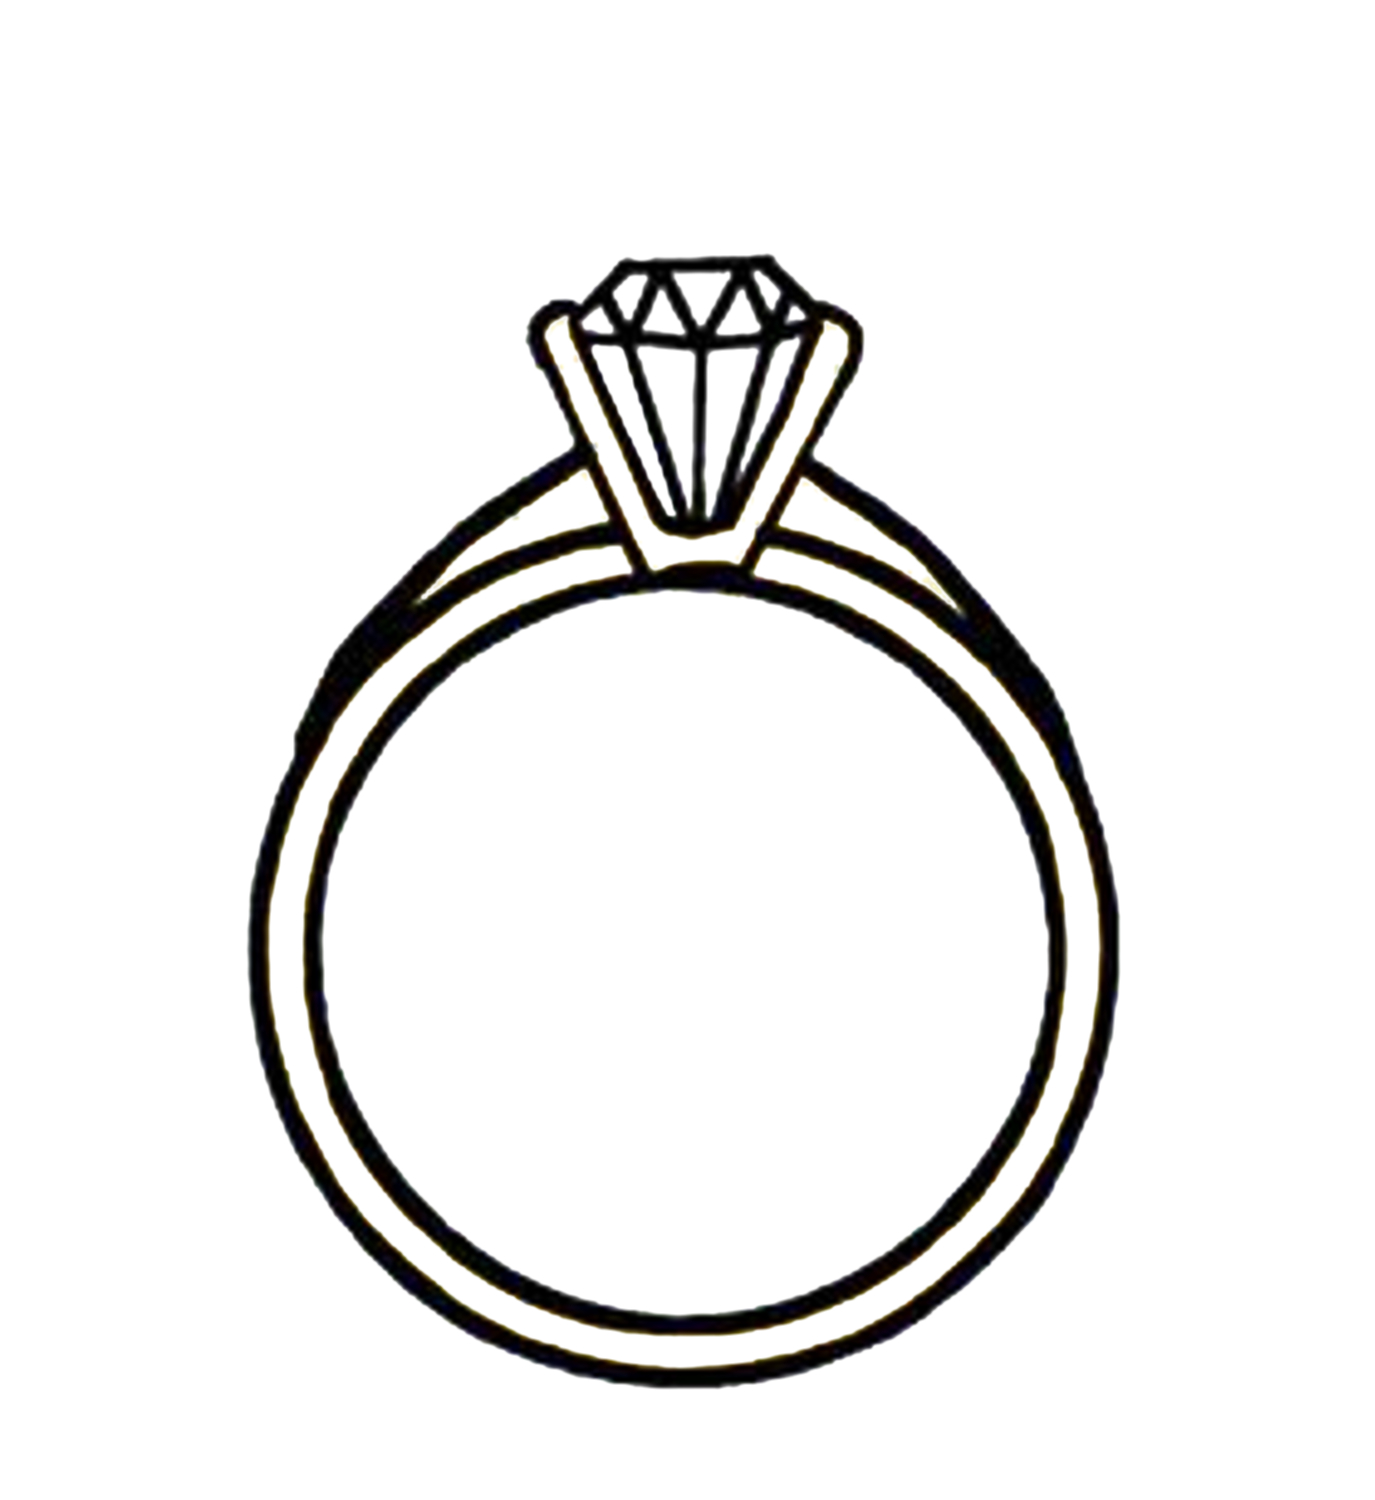 Ring Clipart Black And White-ring clipart black and white-4